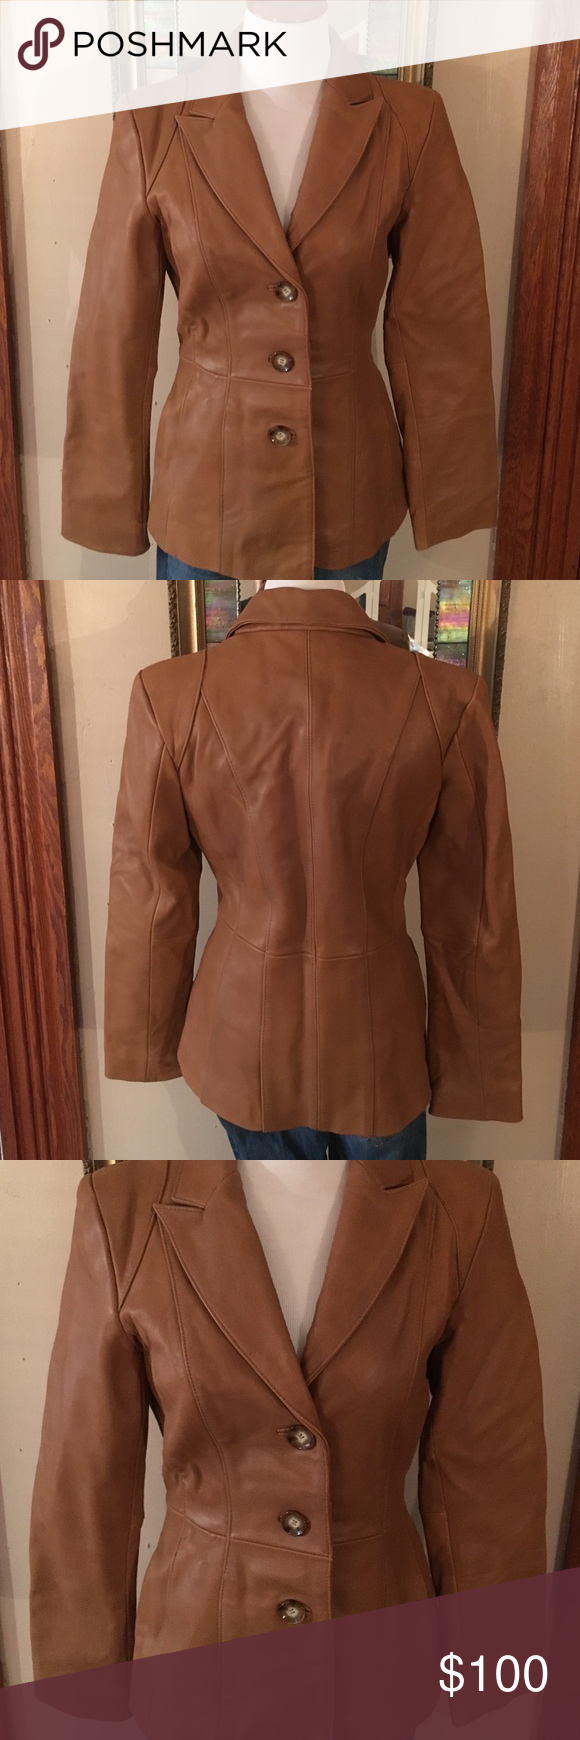 """Lamb skin jacket 100% lamb skin leather jacket. Fully lined. Great used condition. No rips or stains. Two pockets. Length about 25"""", chest flat across about 16"""", sleeve inseam about 18"""" Neiman Marcus Jackets & Coats Blazers"""